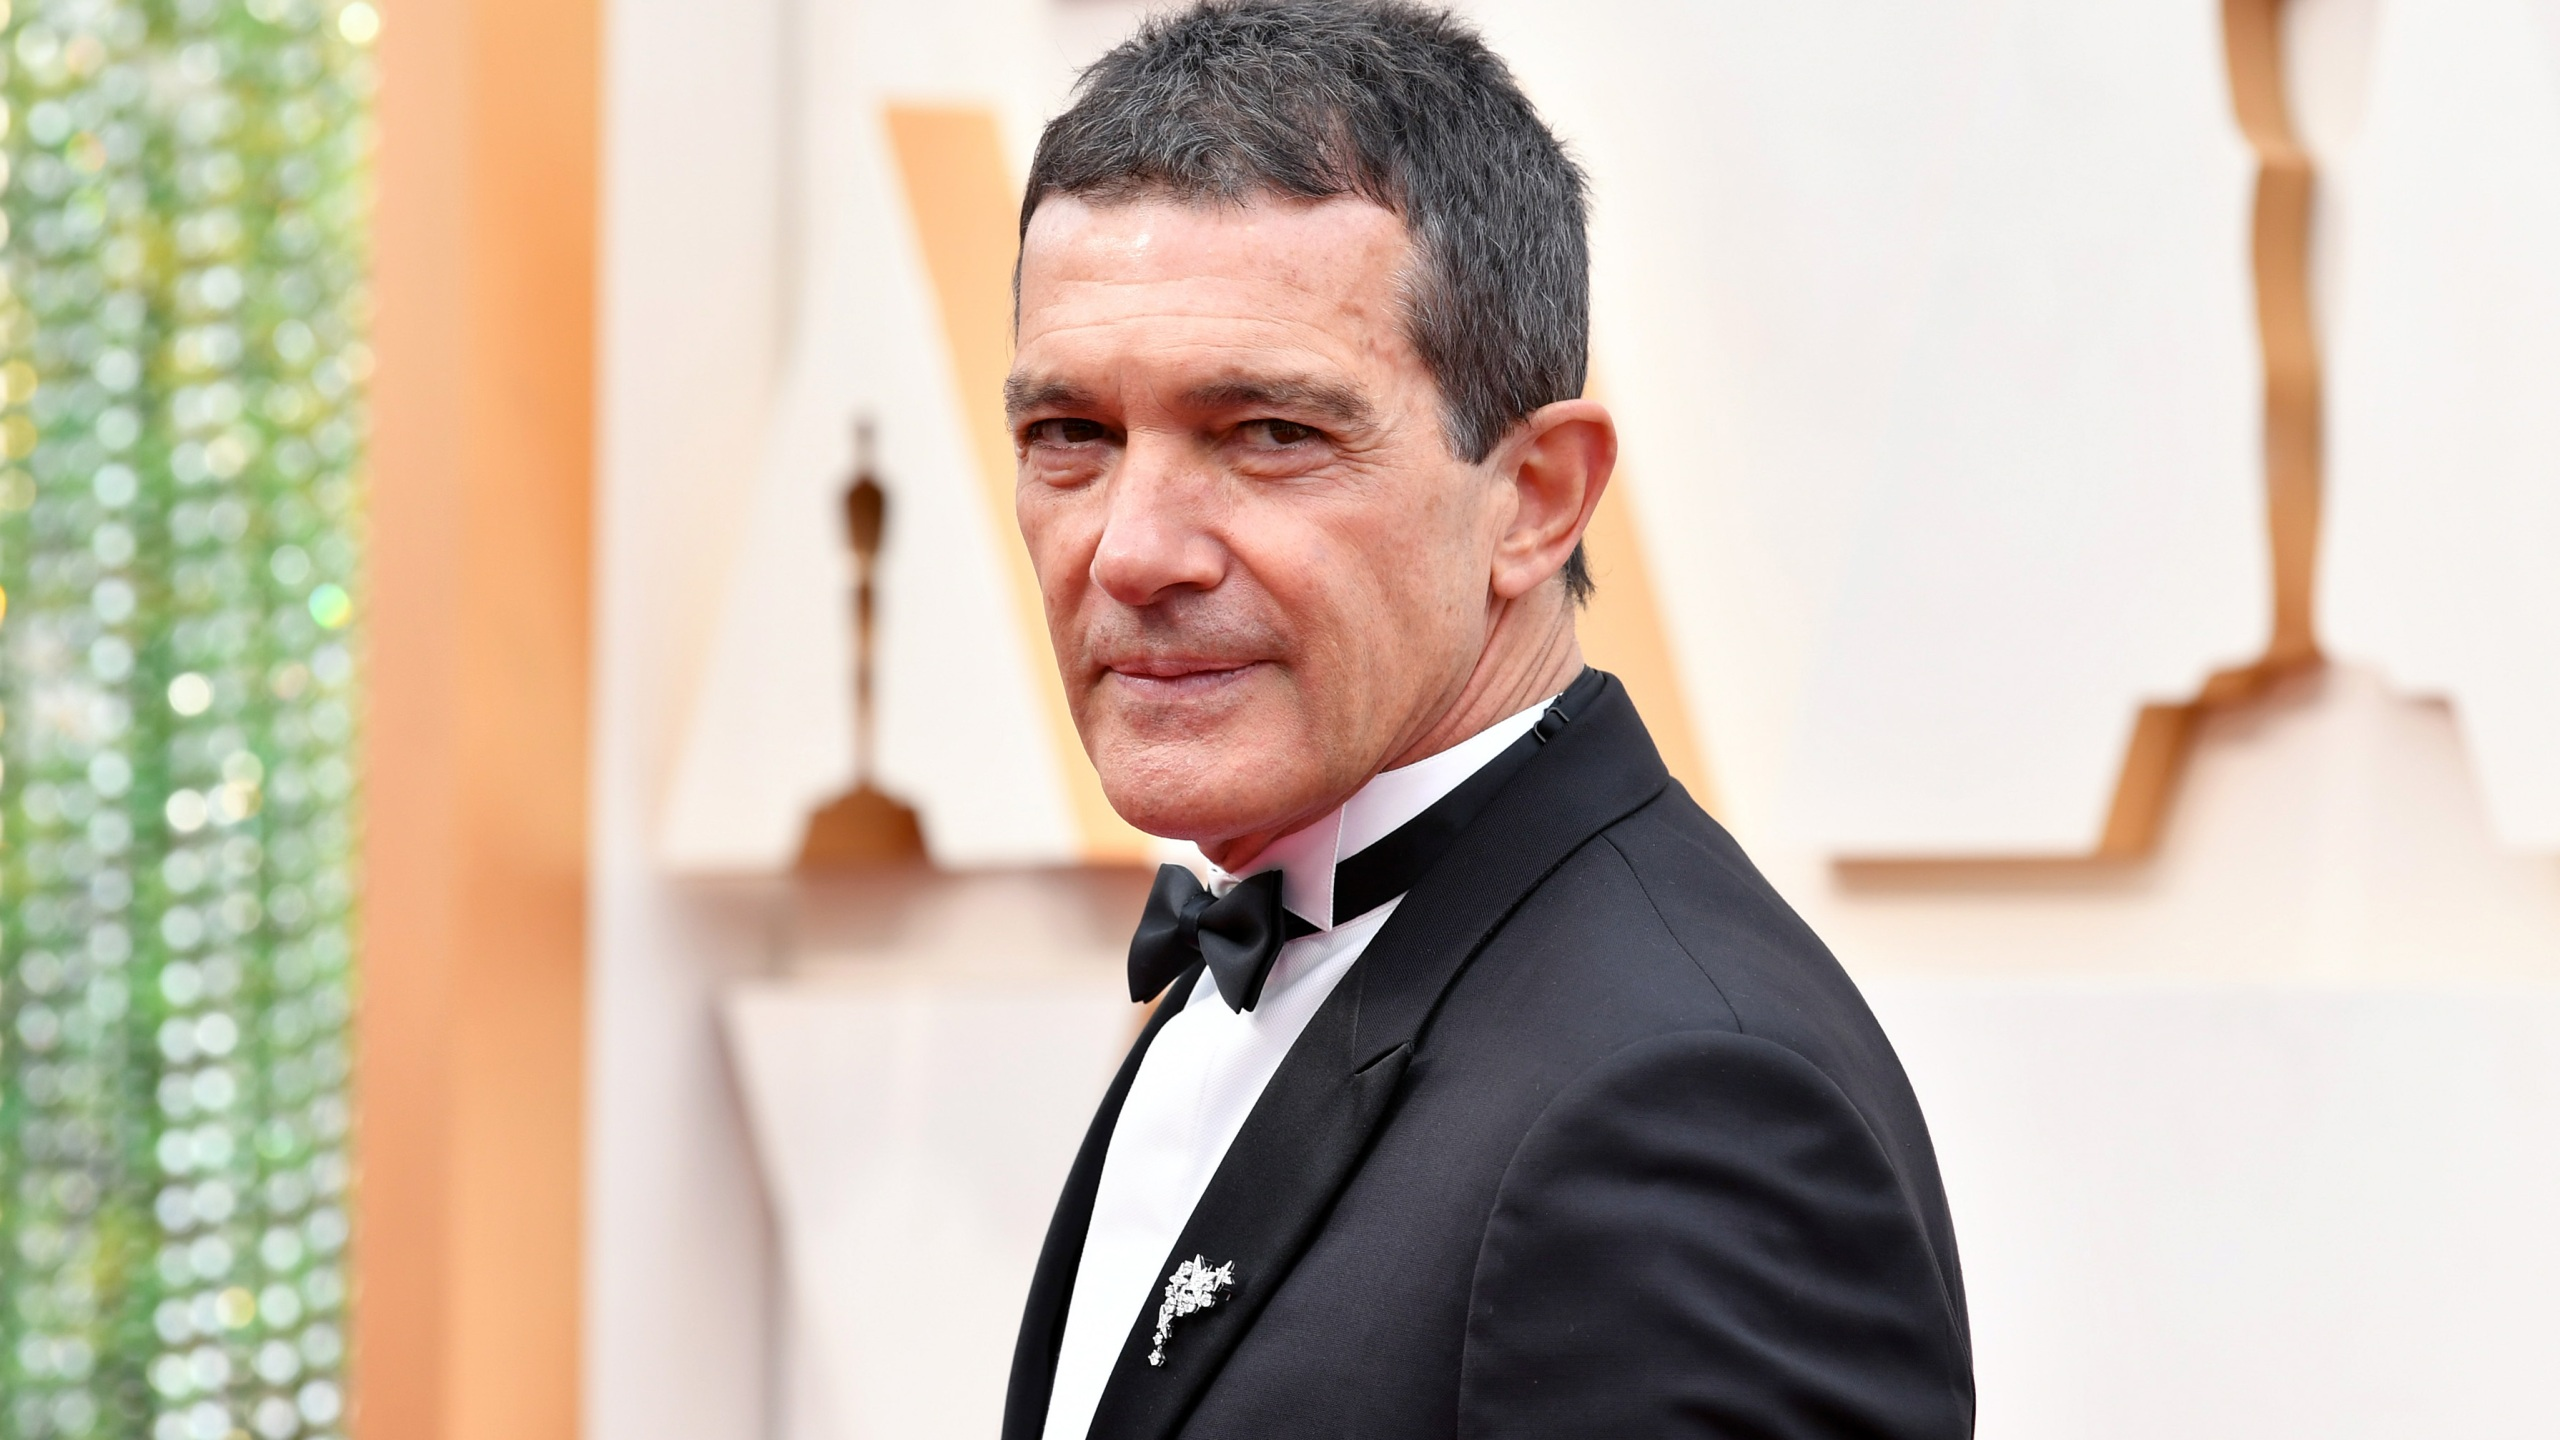 Antonio Banderas attends the 92nd Annual Academy Awards at Hollywood and Highland on February 09, 2020 in Hollywood, California. (Amy Sussman/Getty Images)